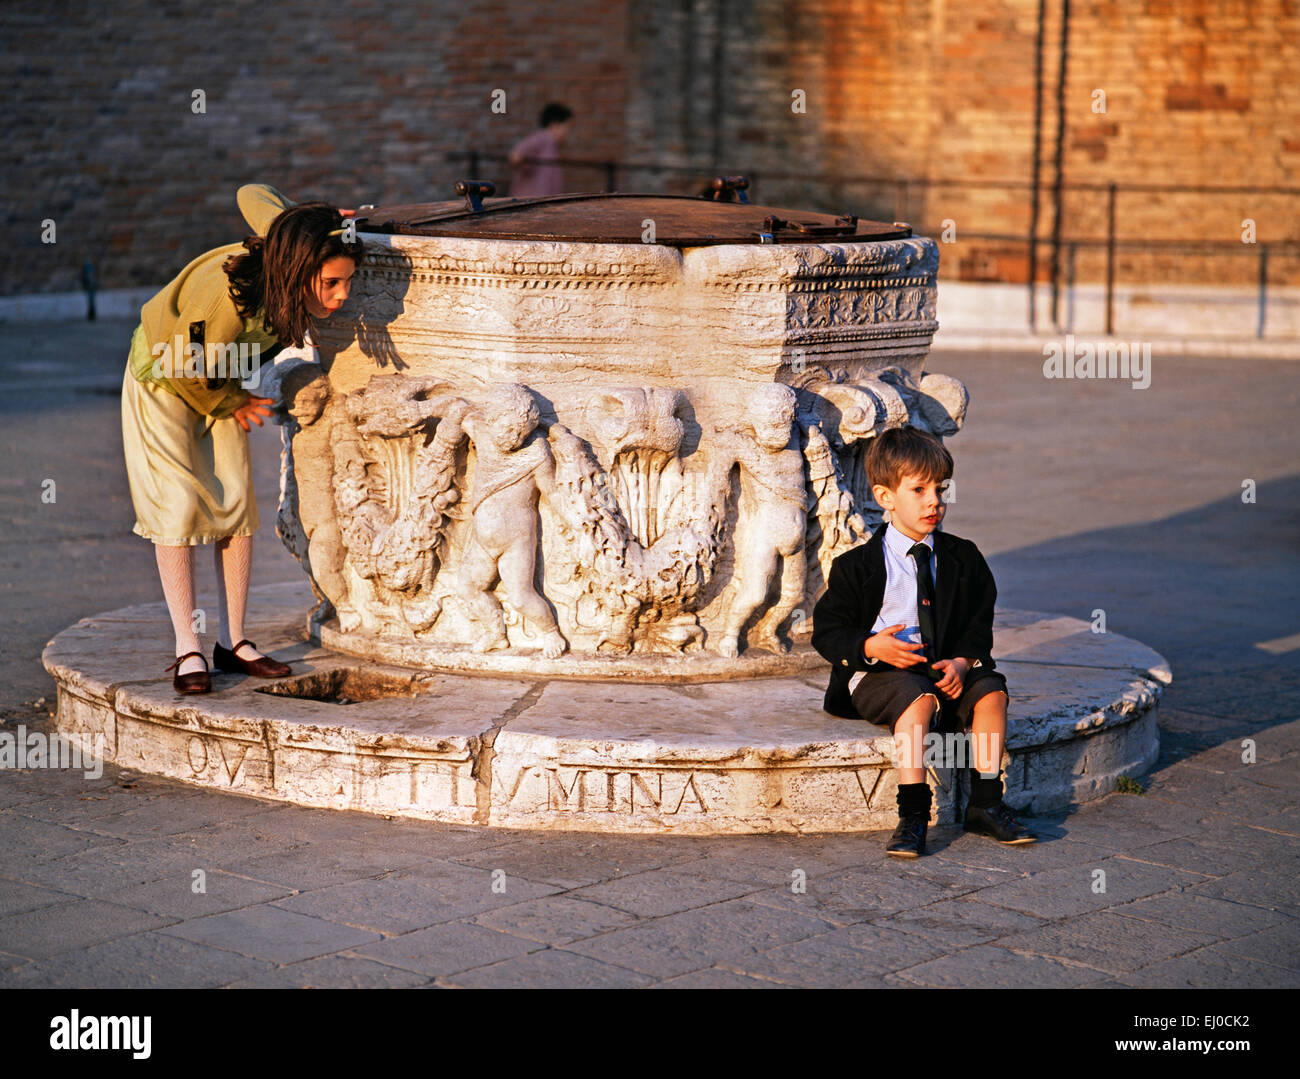 Venice, Veneto, Italy. Young boy and girl playing around a well head in Campo dei Frari. - Stock Image